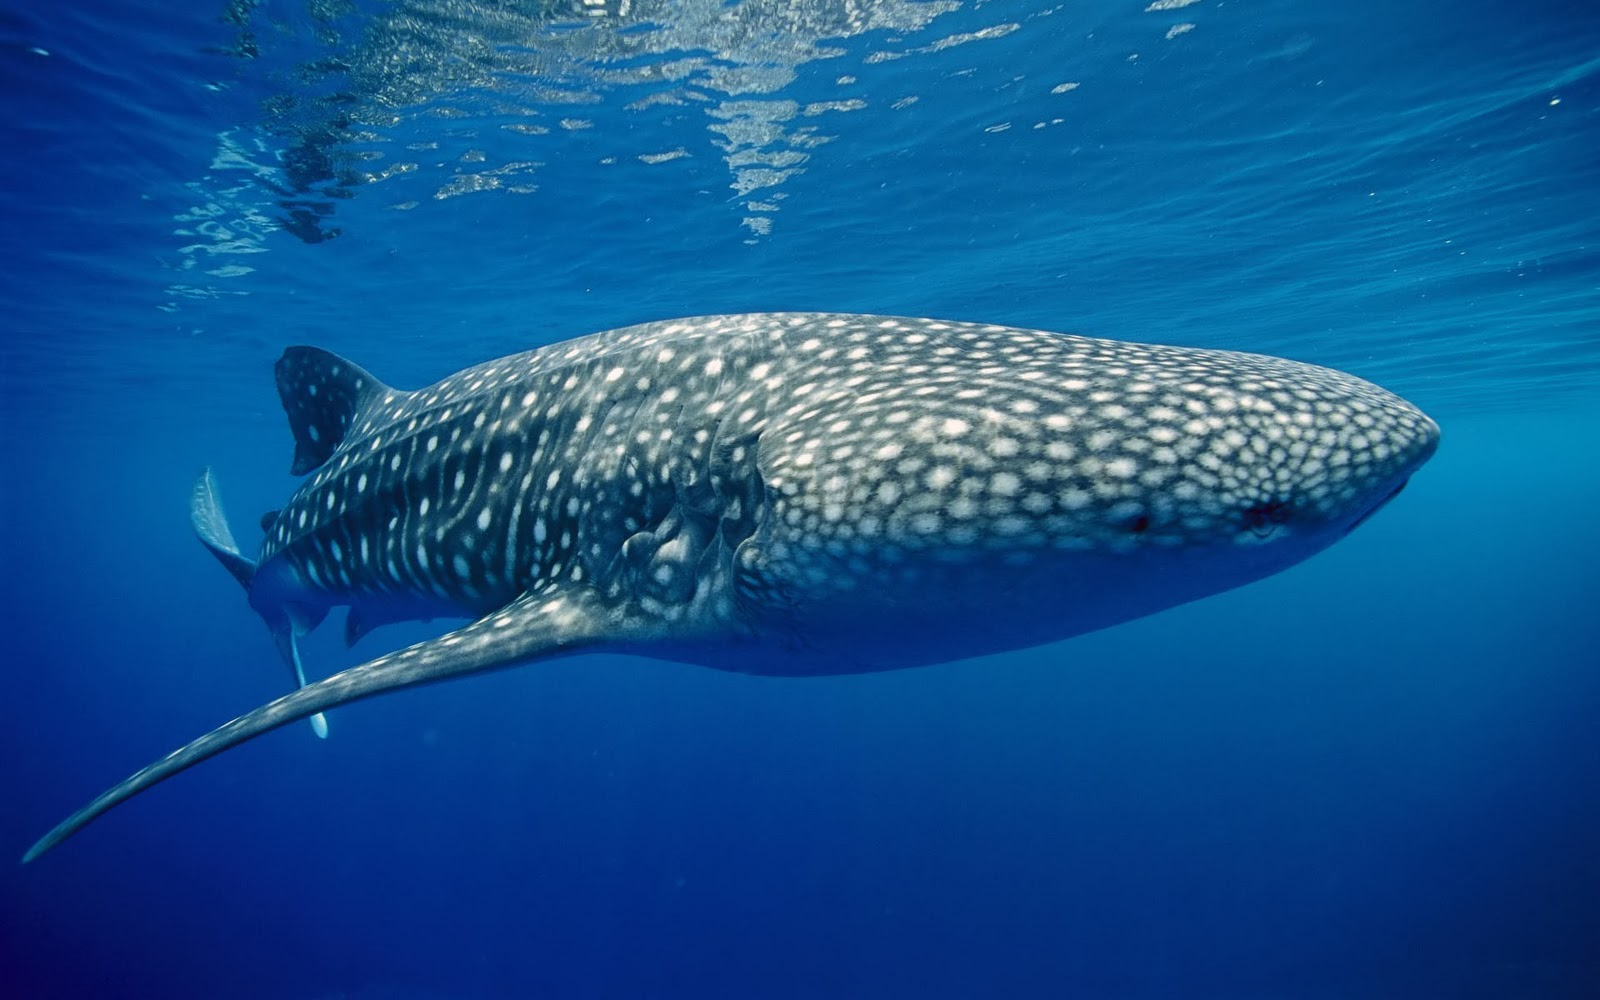 Whale Shark - Amaxing